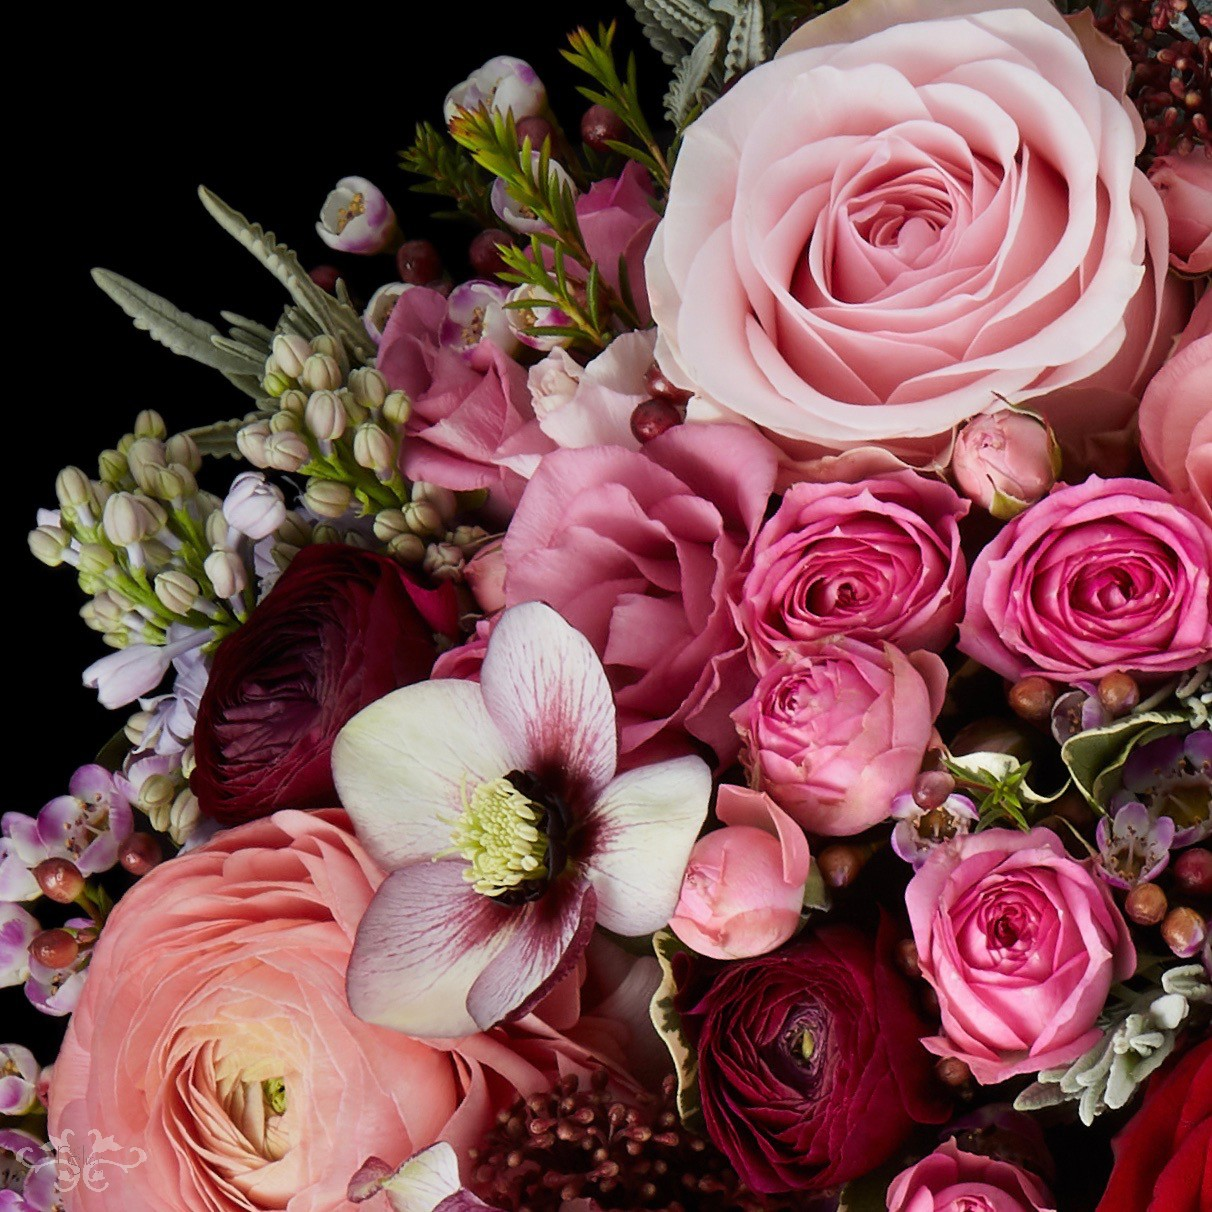 Luxury seasonal bouquets for Valentine's Day by Neill Strain Floral Couture